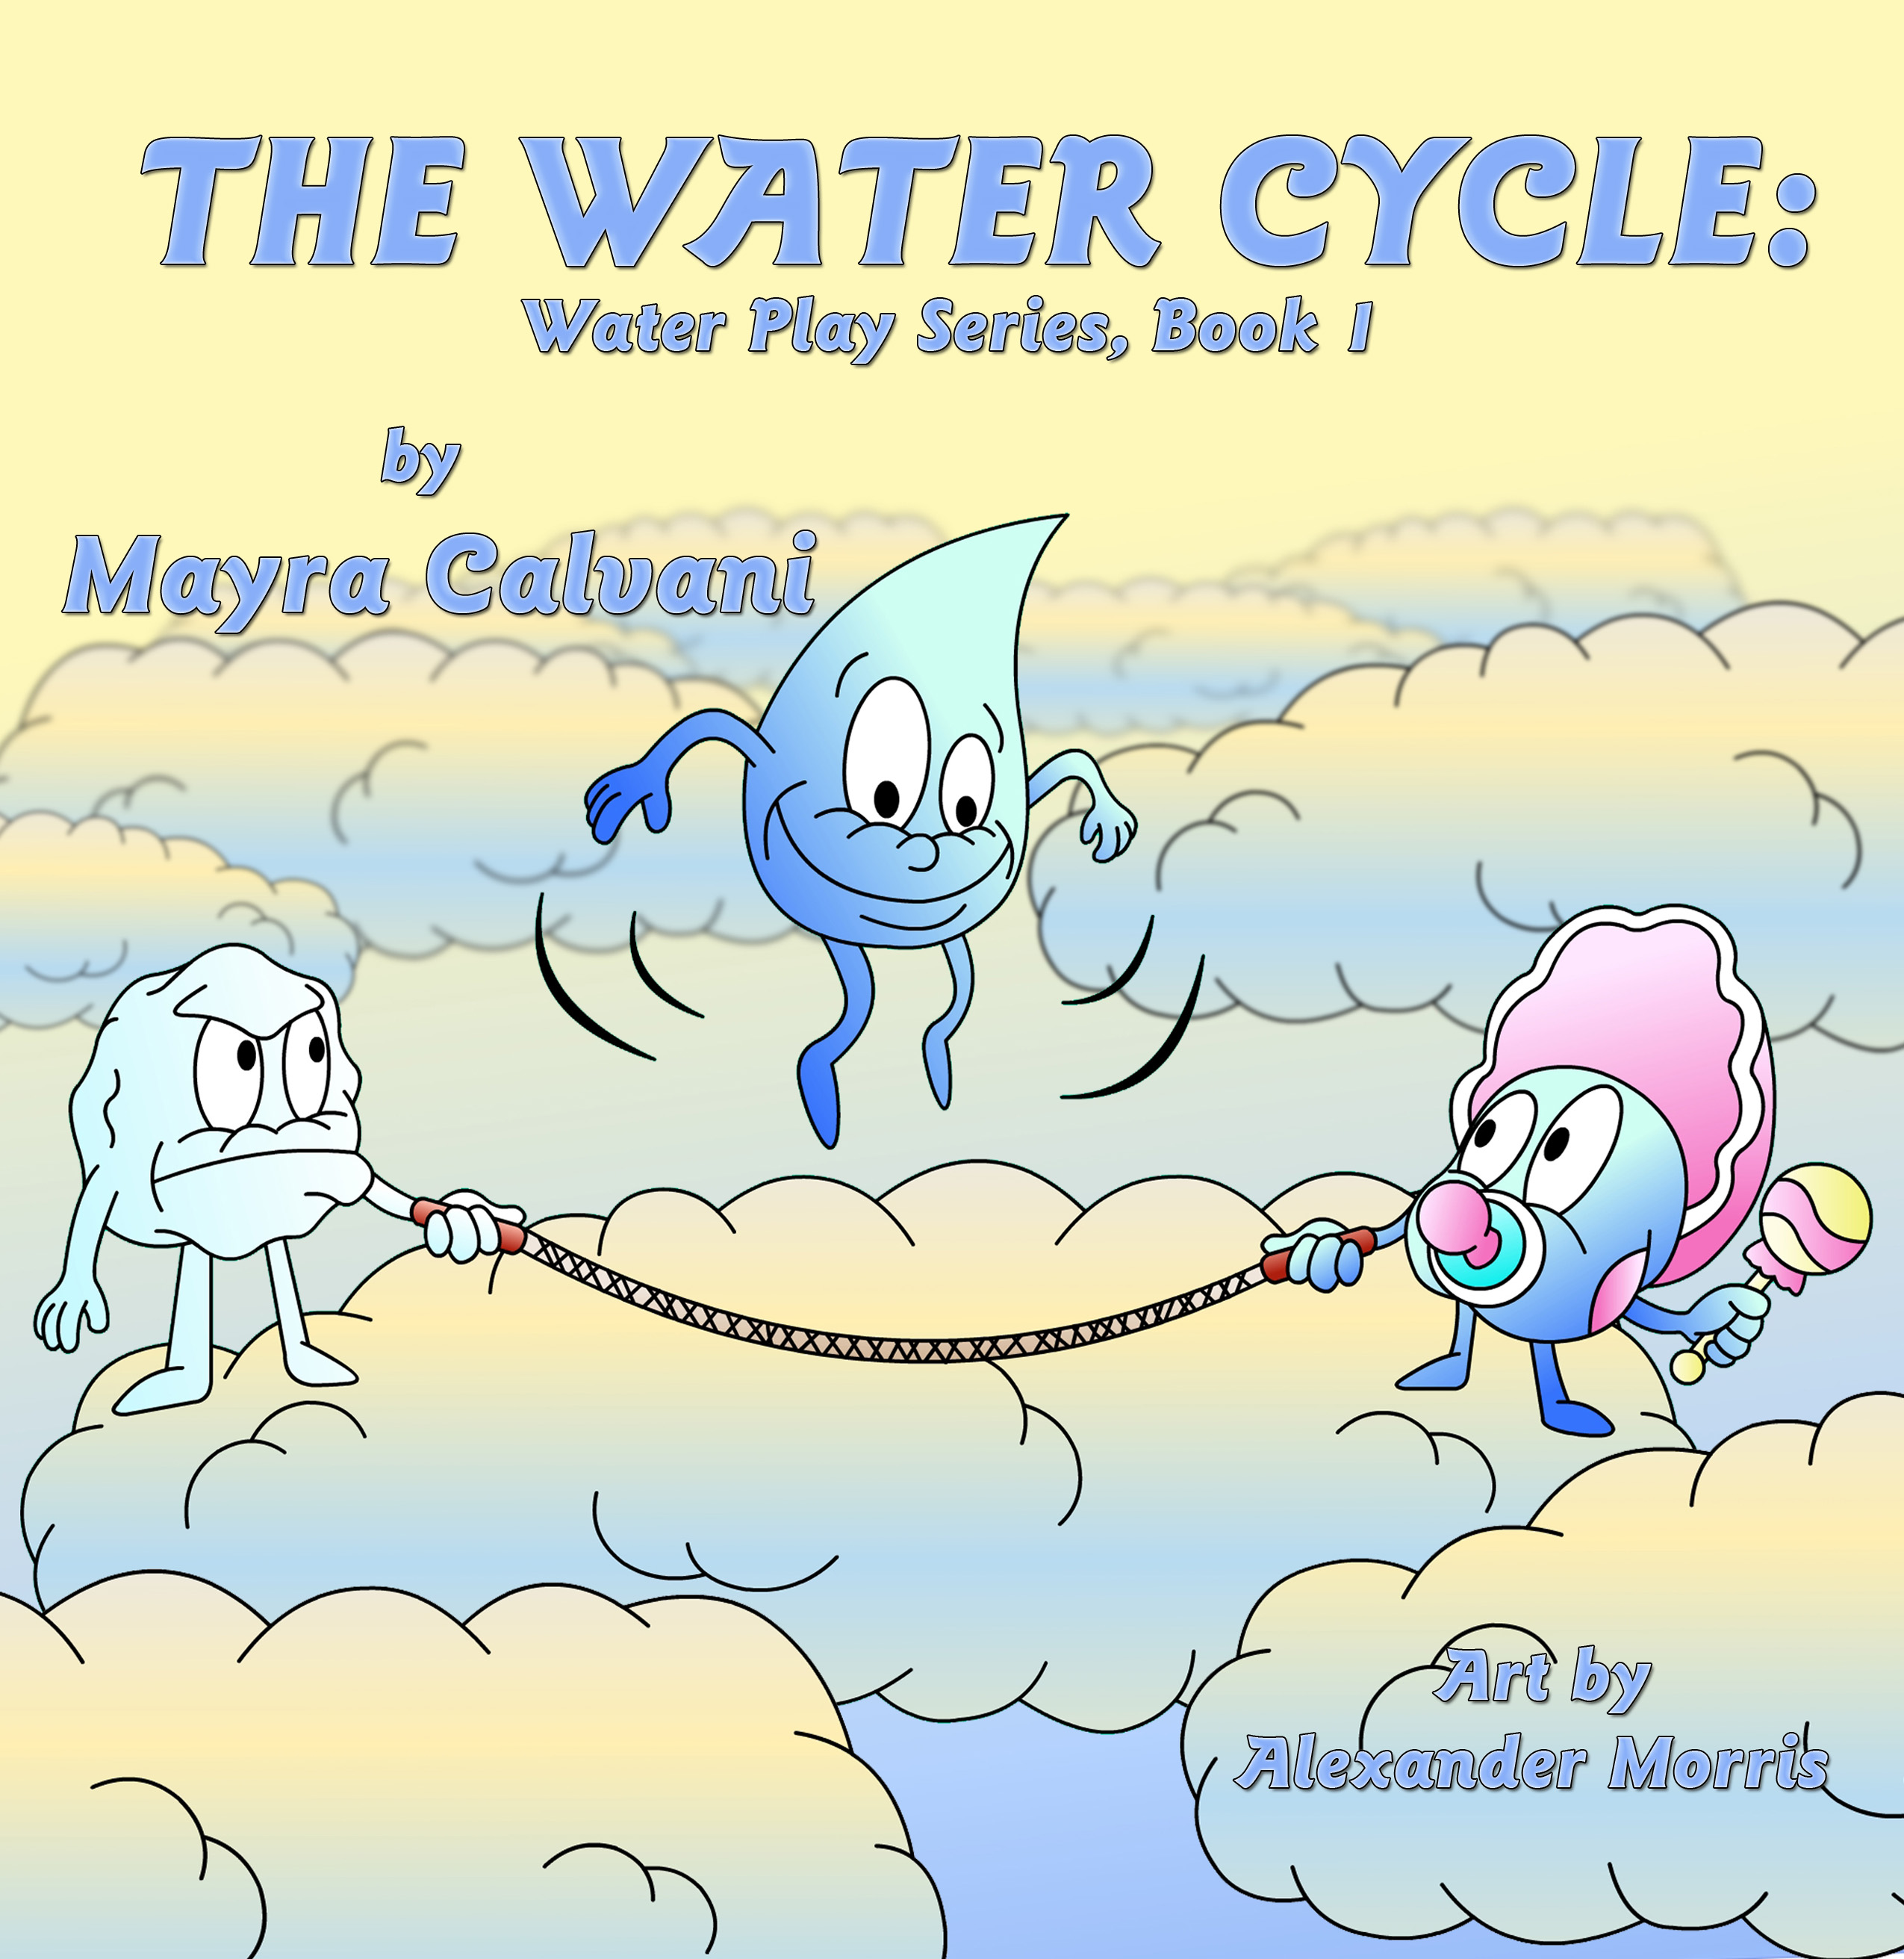 Essay on water cycle write about water cycle write printable water books on the water cycle books printable water cycle water the water cycle water play series thecheapjerseys Images